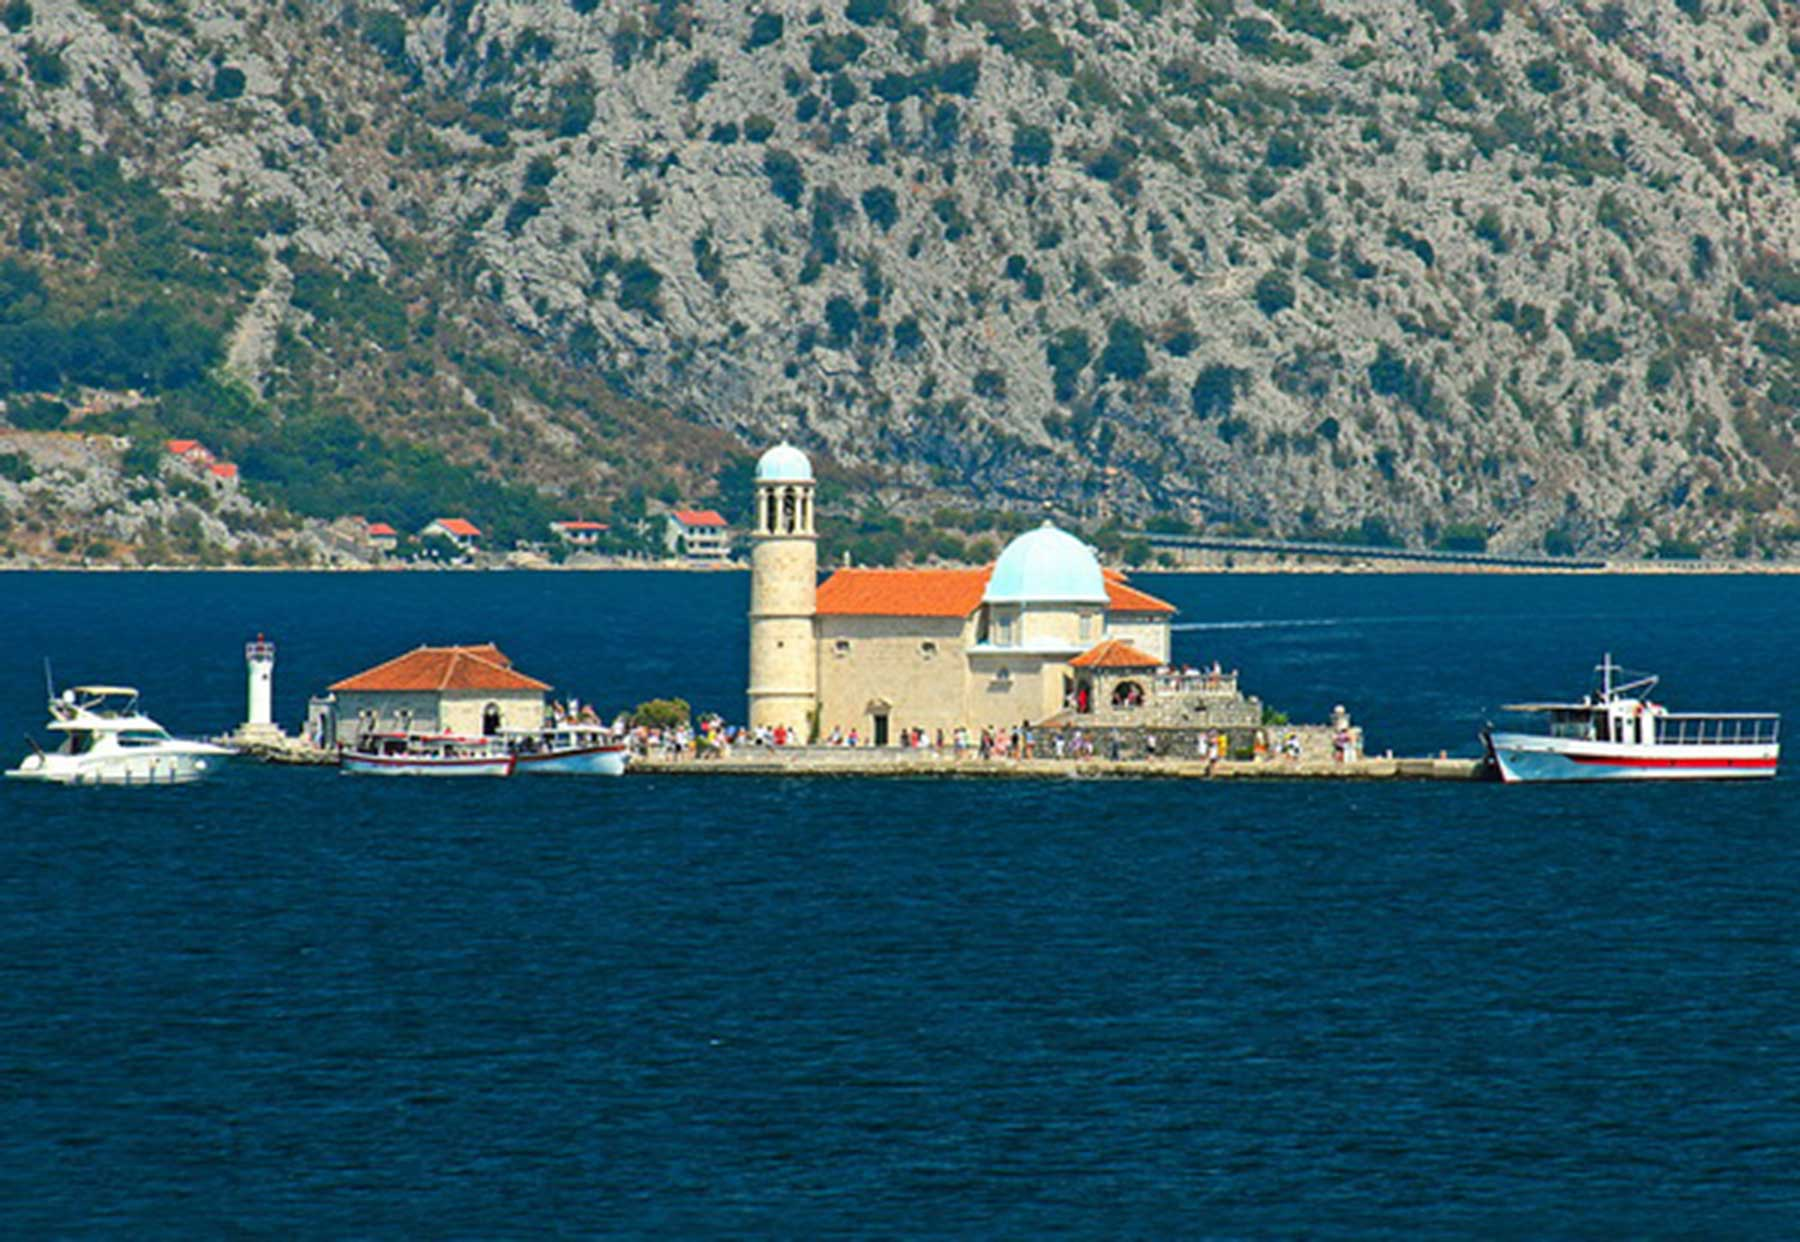 -images-excursions-montenegro-boat-tour-island-lady-of-rocks-montenegro-boat-tour.jpg